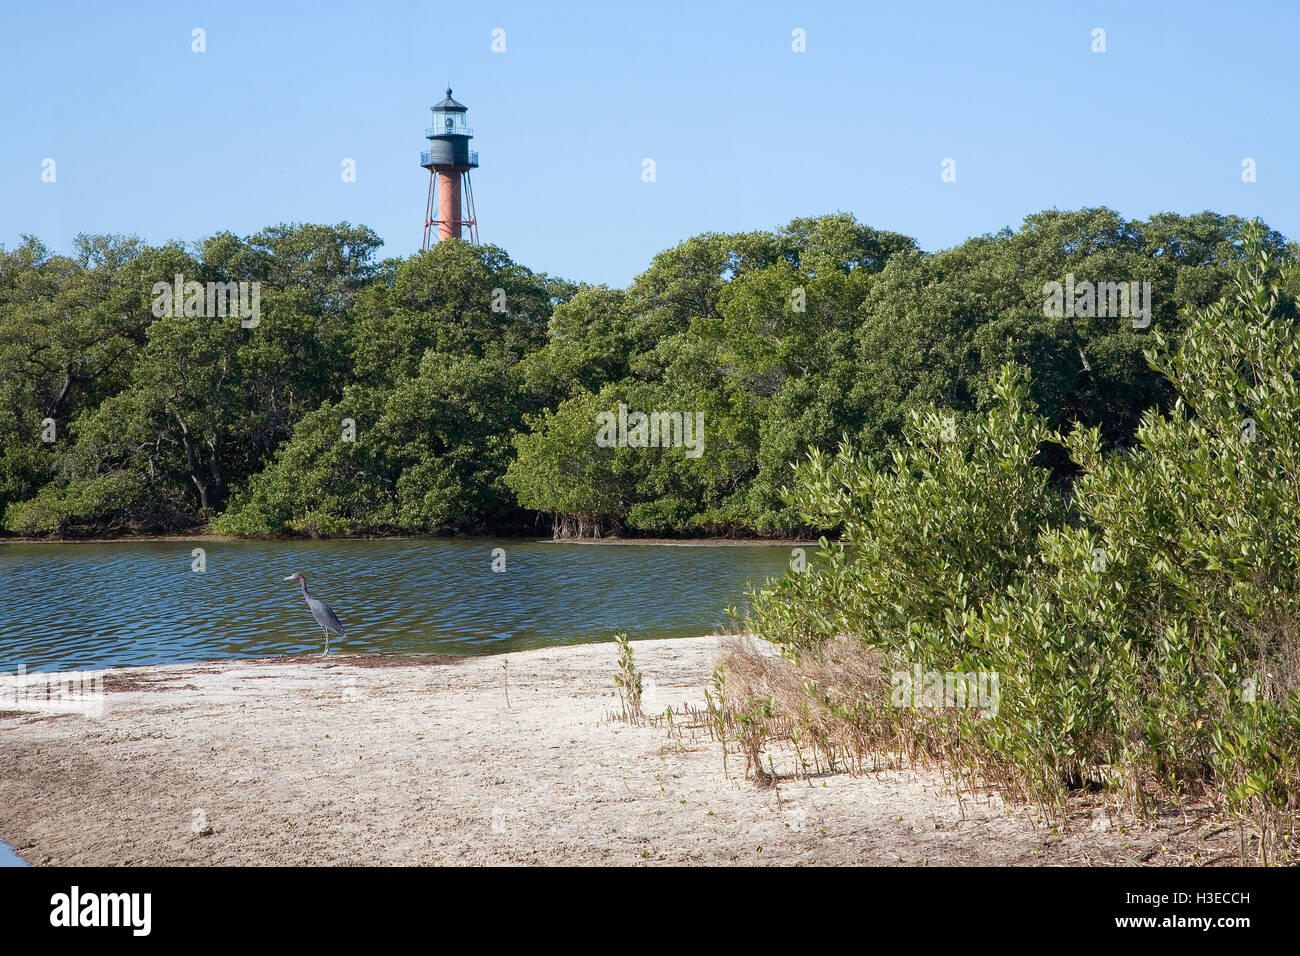 A view of Anclote Key from an east approach. It rises above verdant mangroves & a little blue heron stands quietly - Stock Image